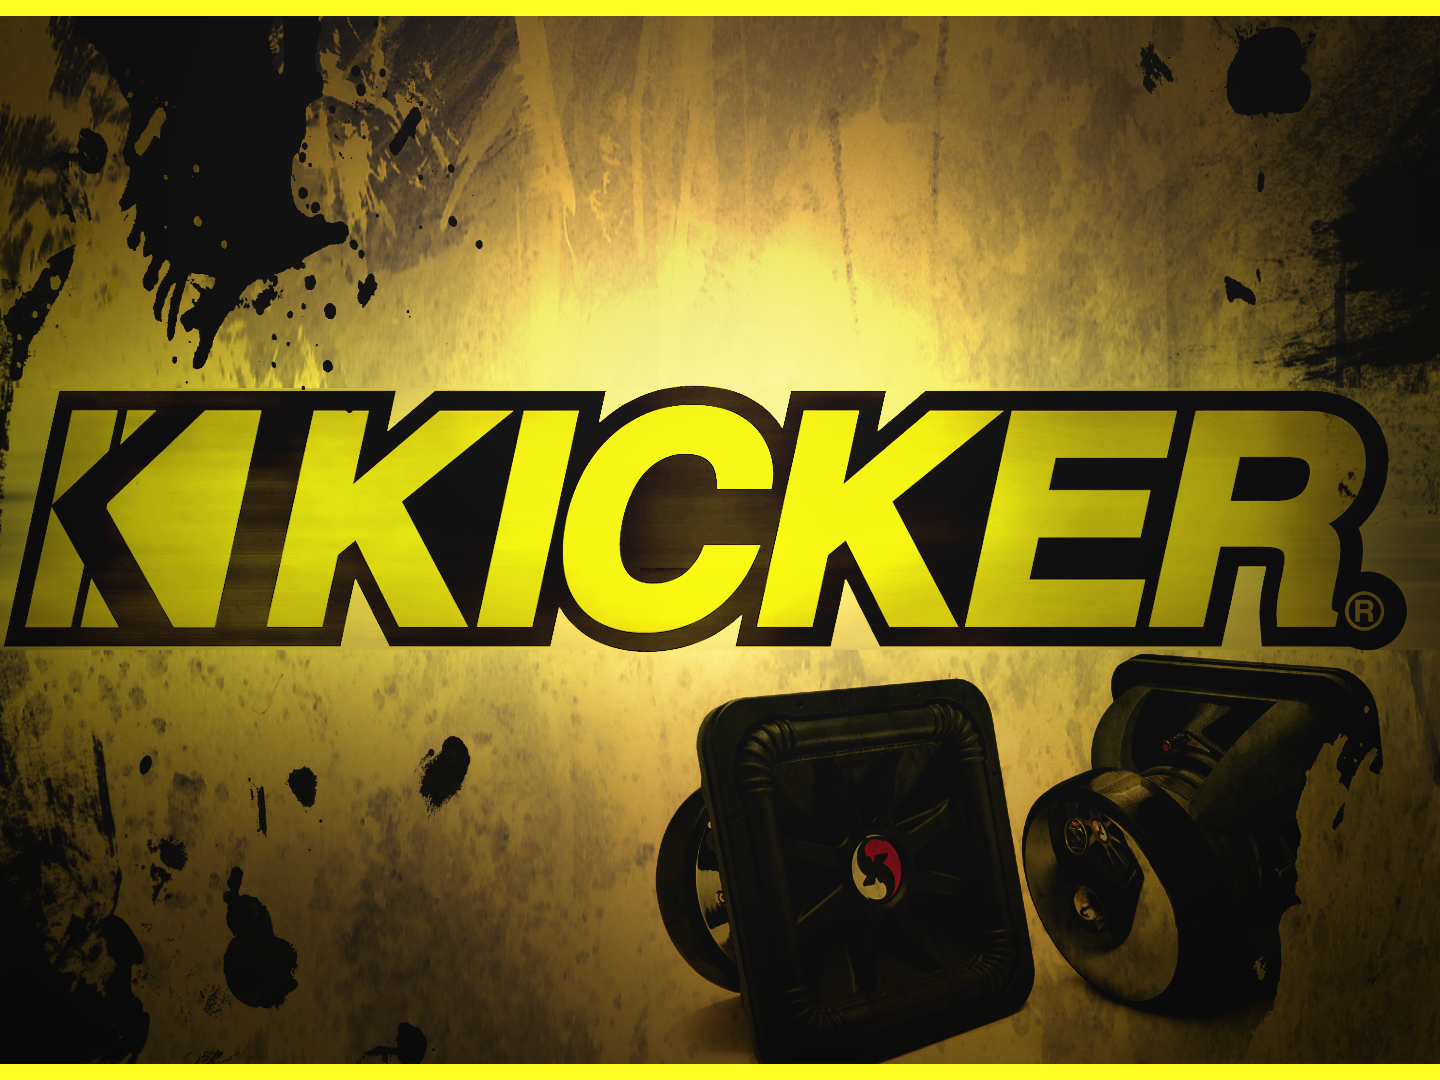 download comsitefiles1349725025 kicker car audio wallpaper 1440x1080